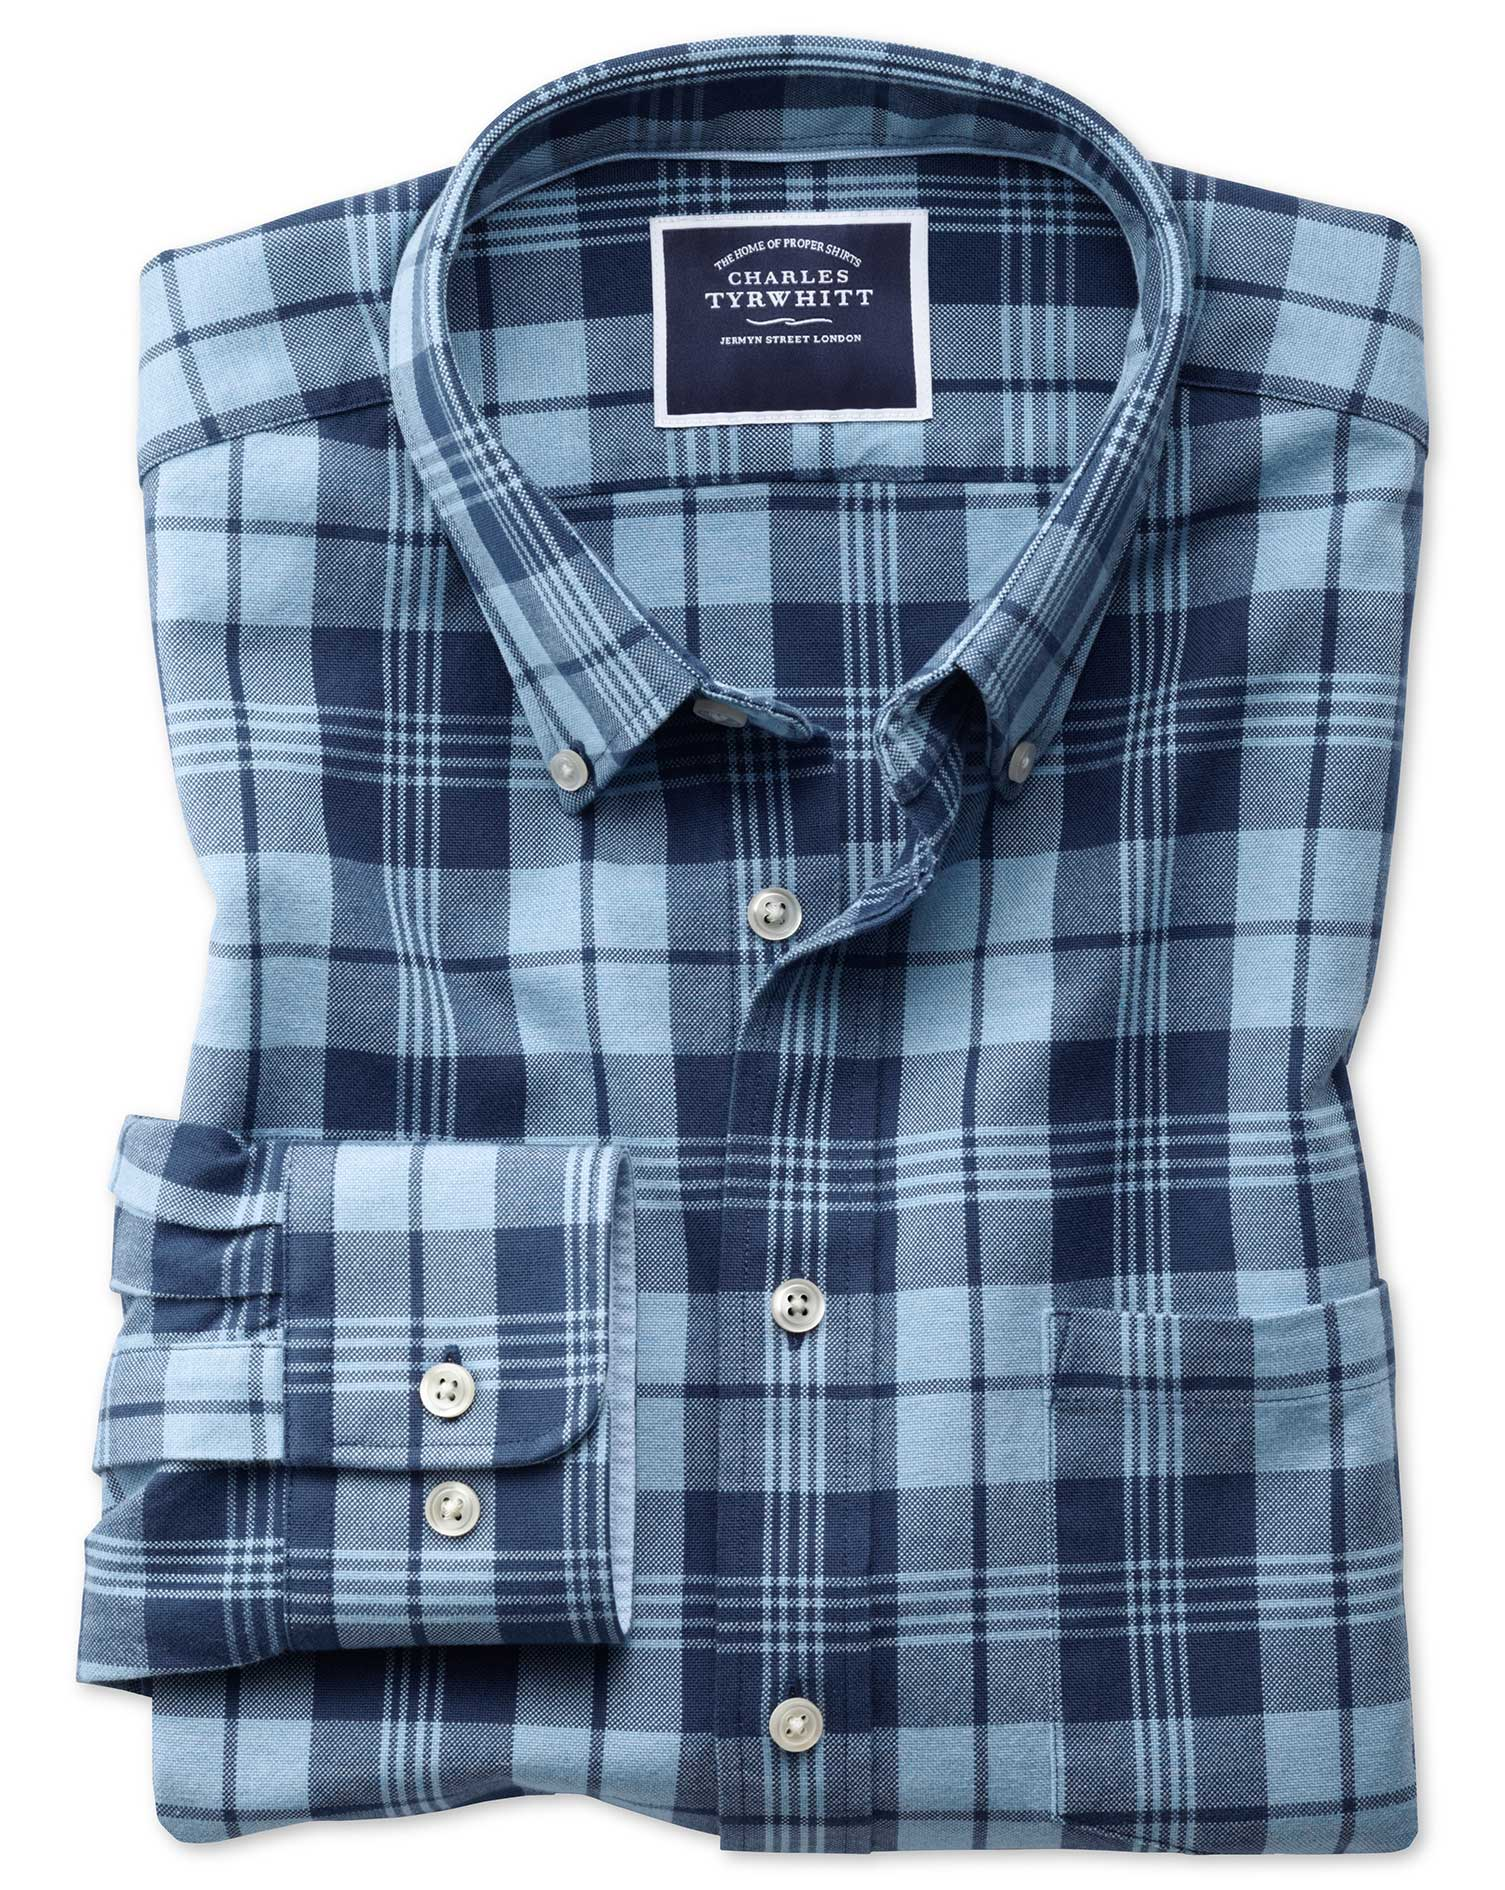 Slim Fit Button-Down Washed Oxford Navy and Blue Check Cotton Shirt Single Cuff Size Large by Charle